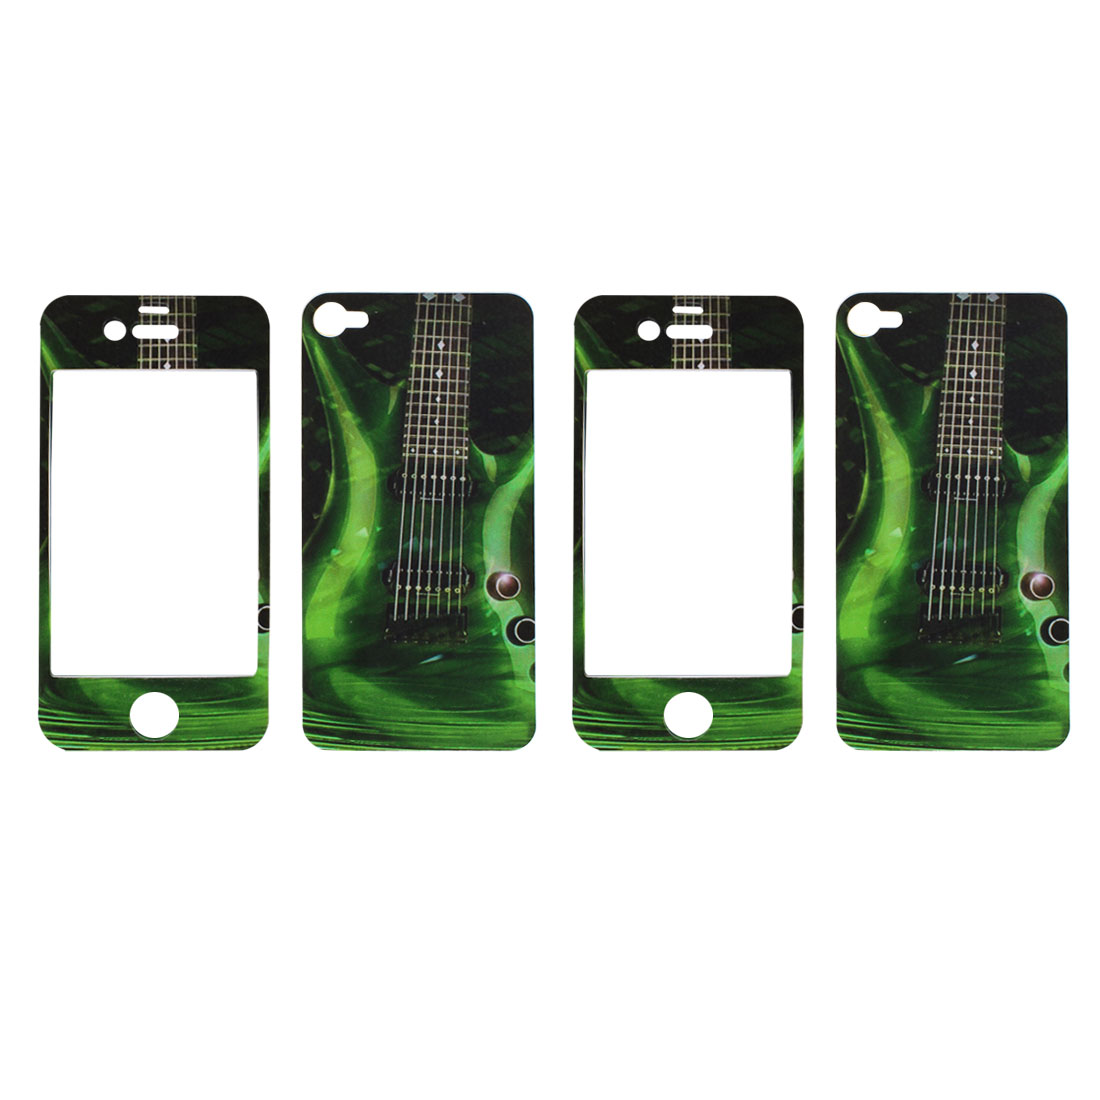 Front + Back Sticker Decal Guard Shield Protector Dark Green 2 Pcs for iPhone 4 4G 4S